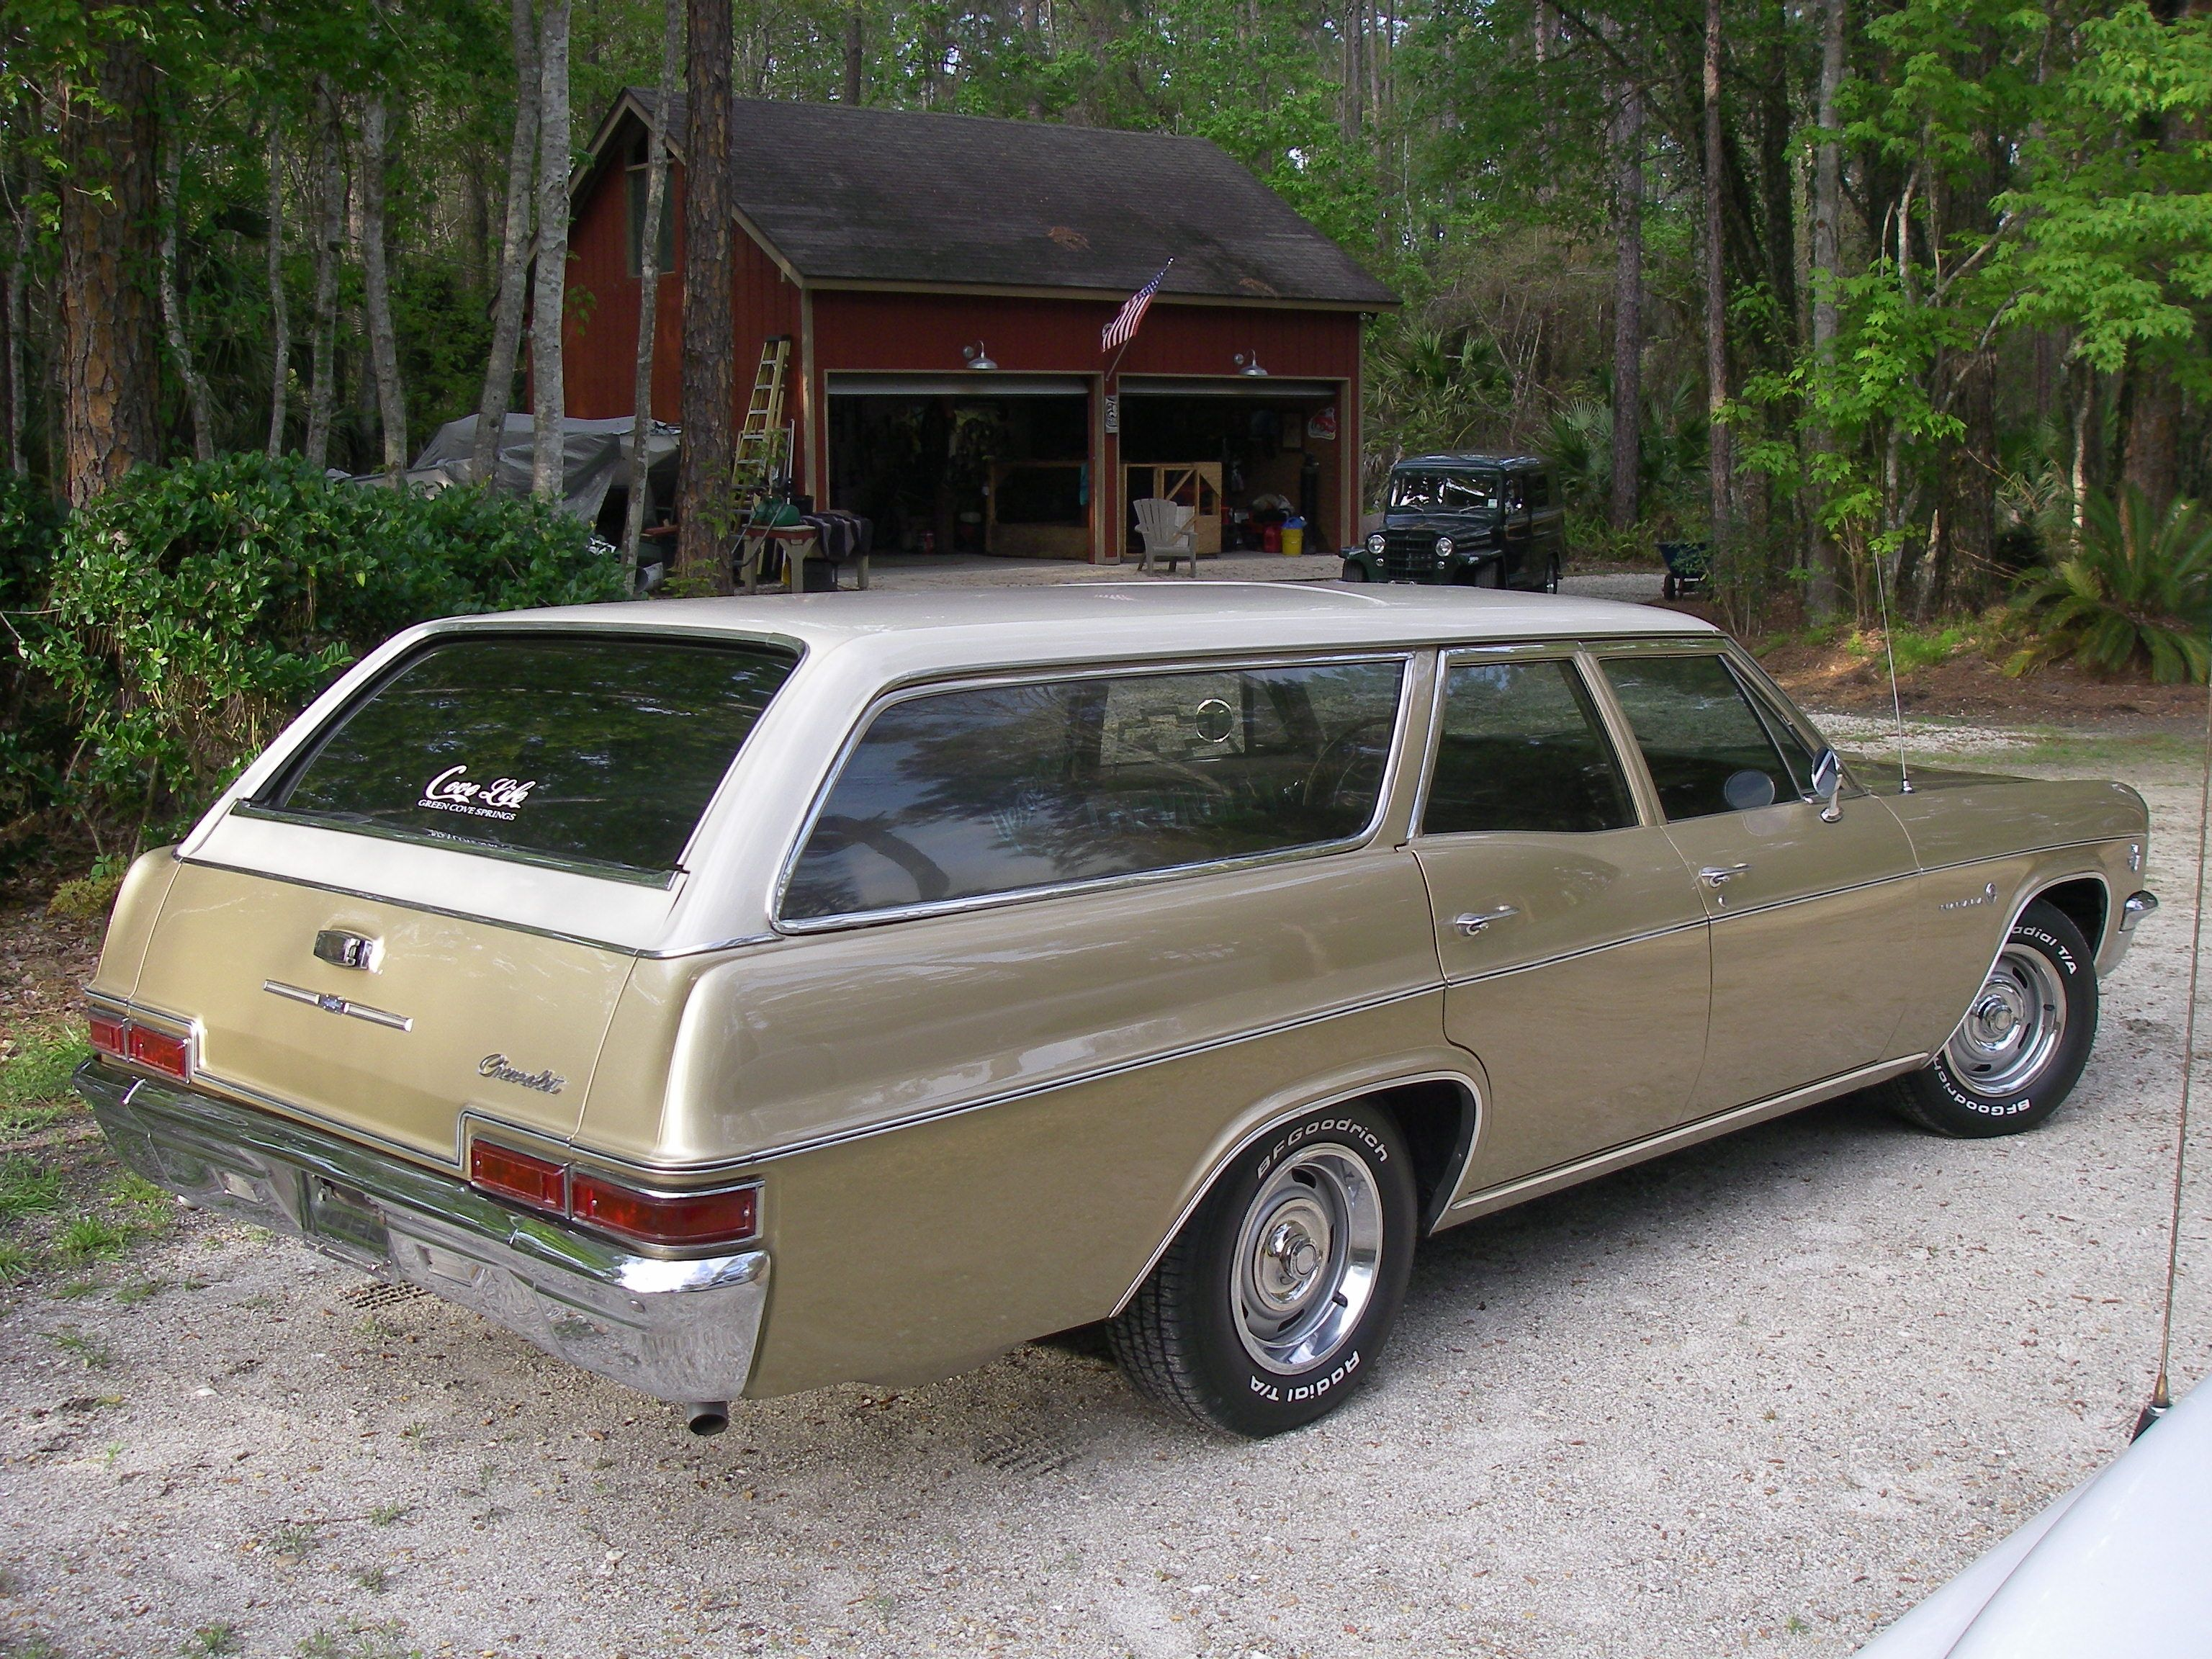 1966 Chevrolet Impala station wagon | My Favorite Great Cars Of All ...